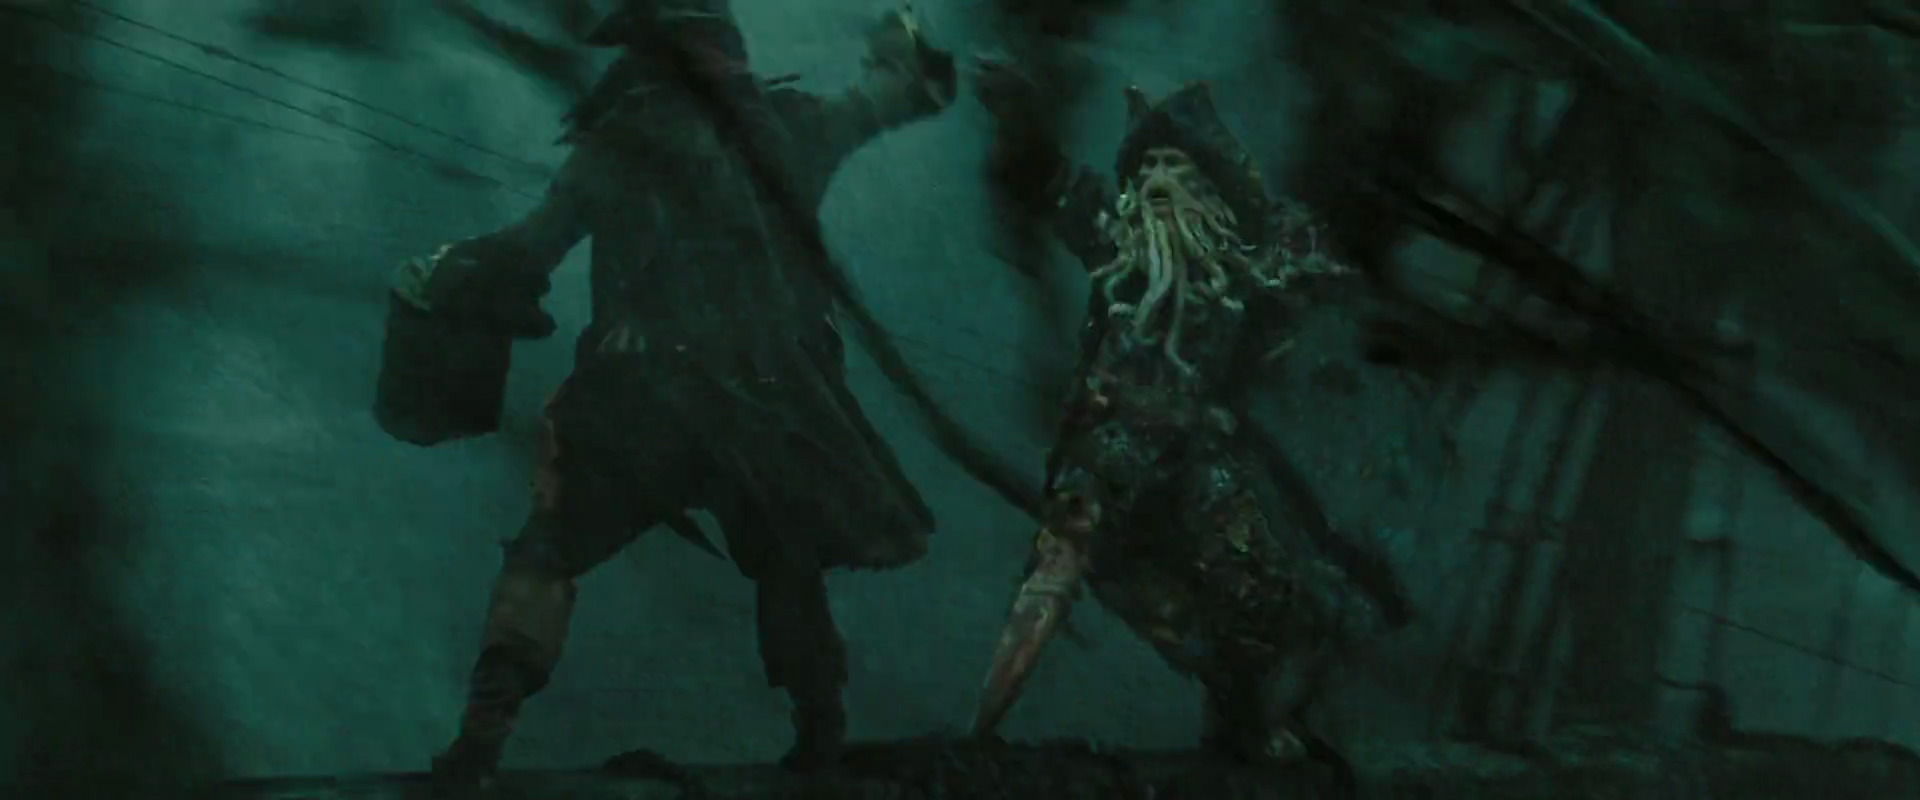 File:Davy Jones Duels in Maelstrom.jpg